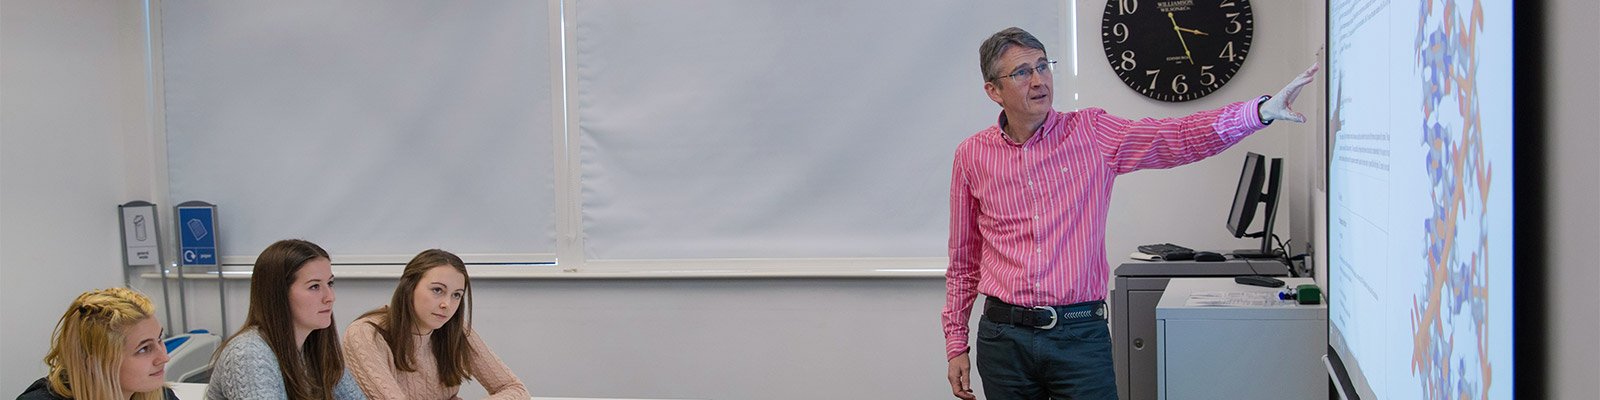 A lecturer stands in front of a white board